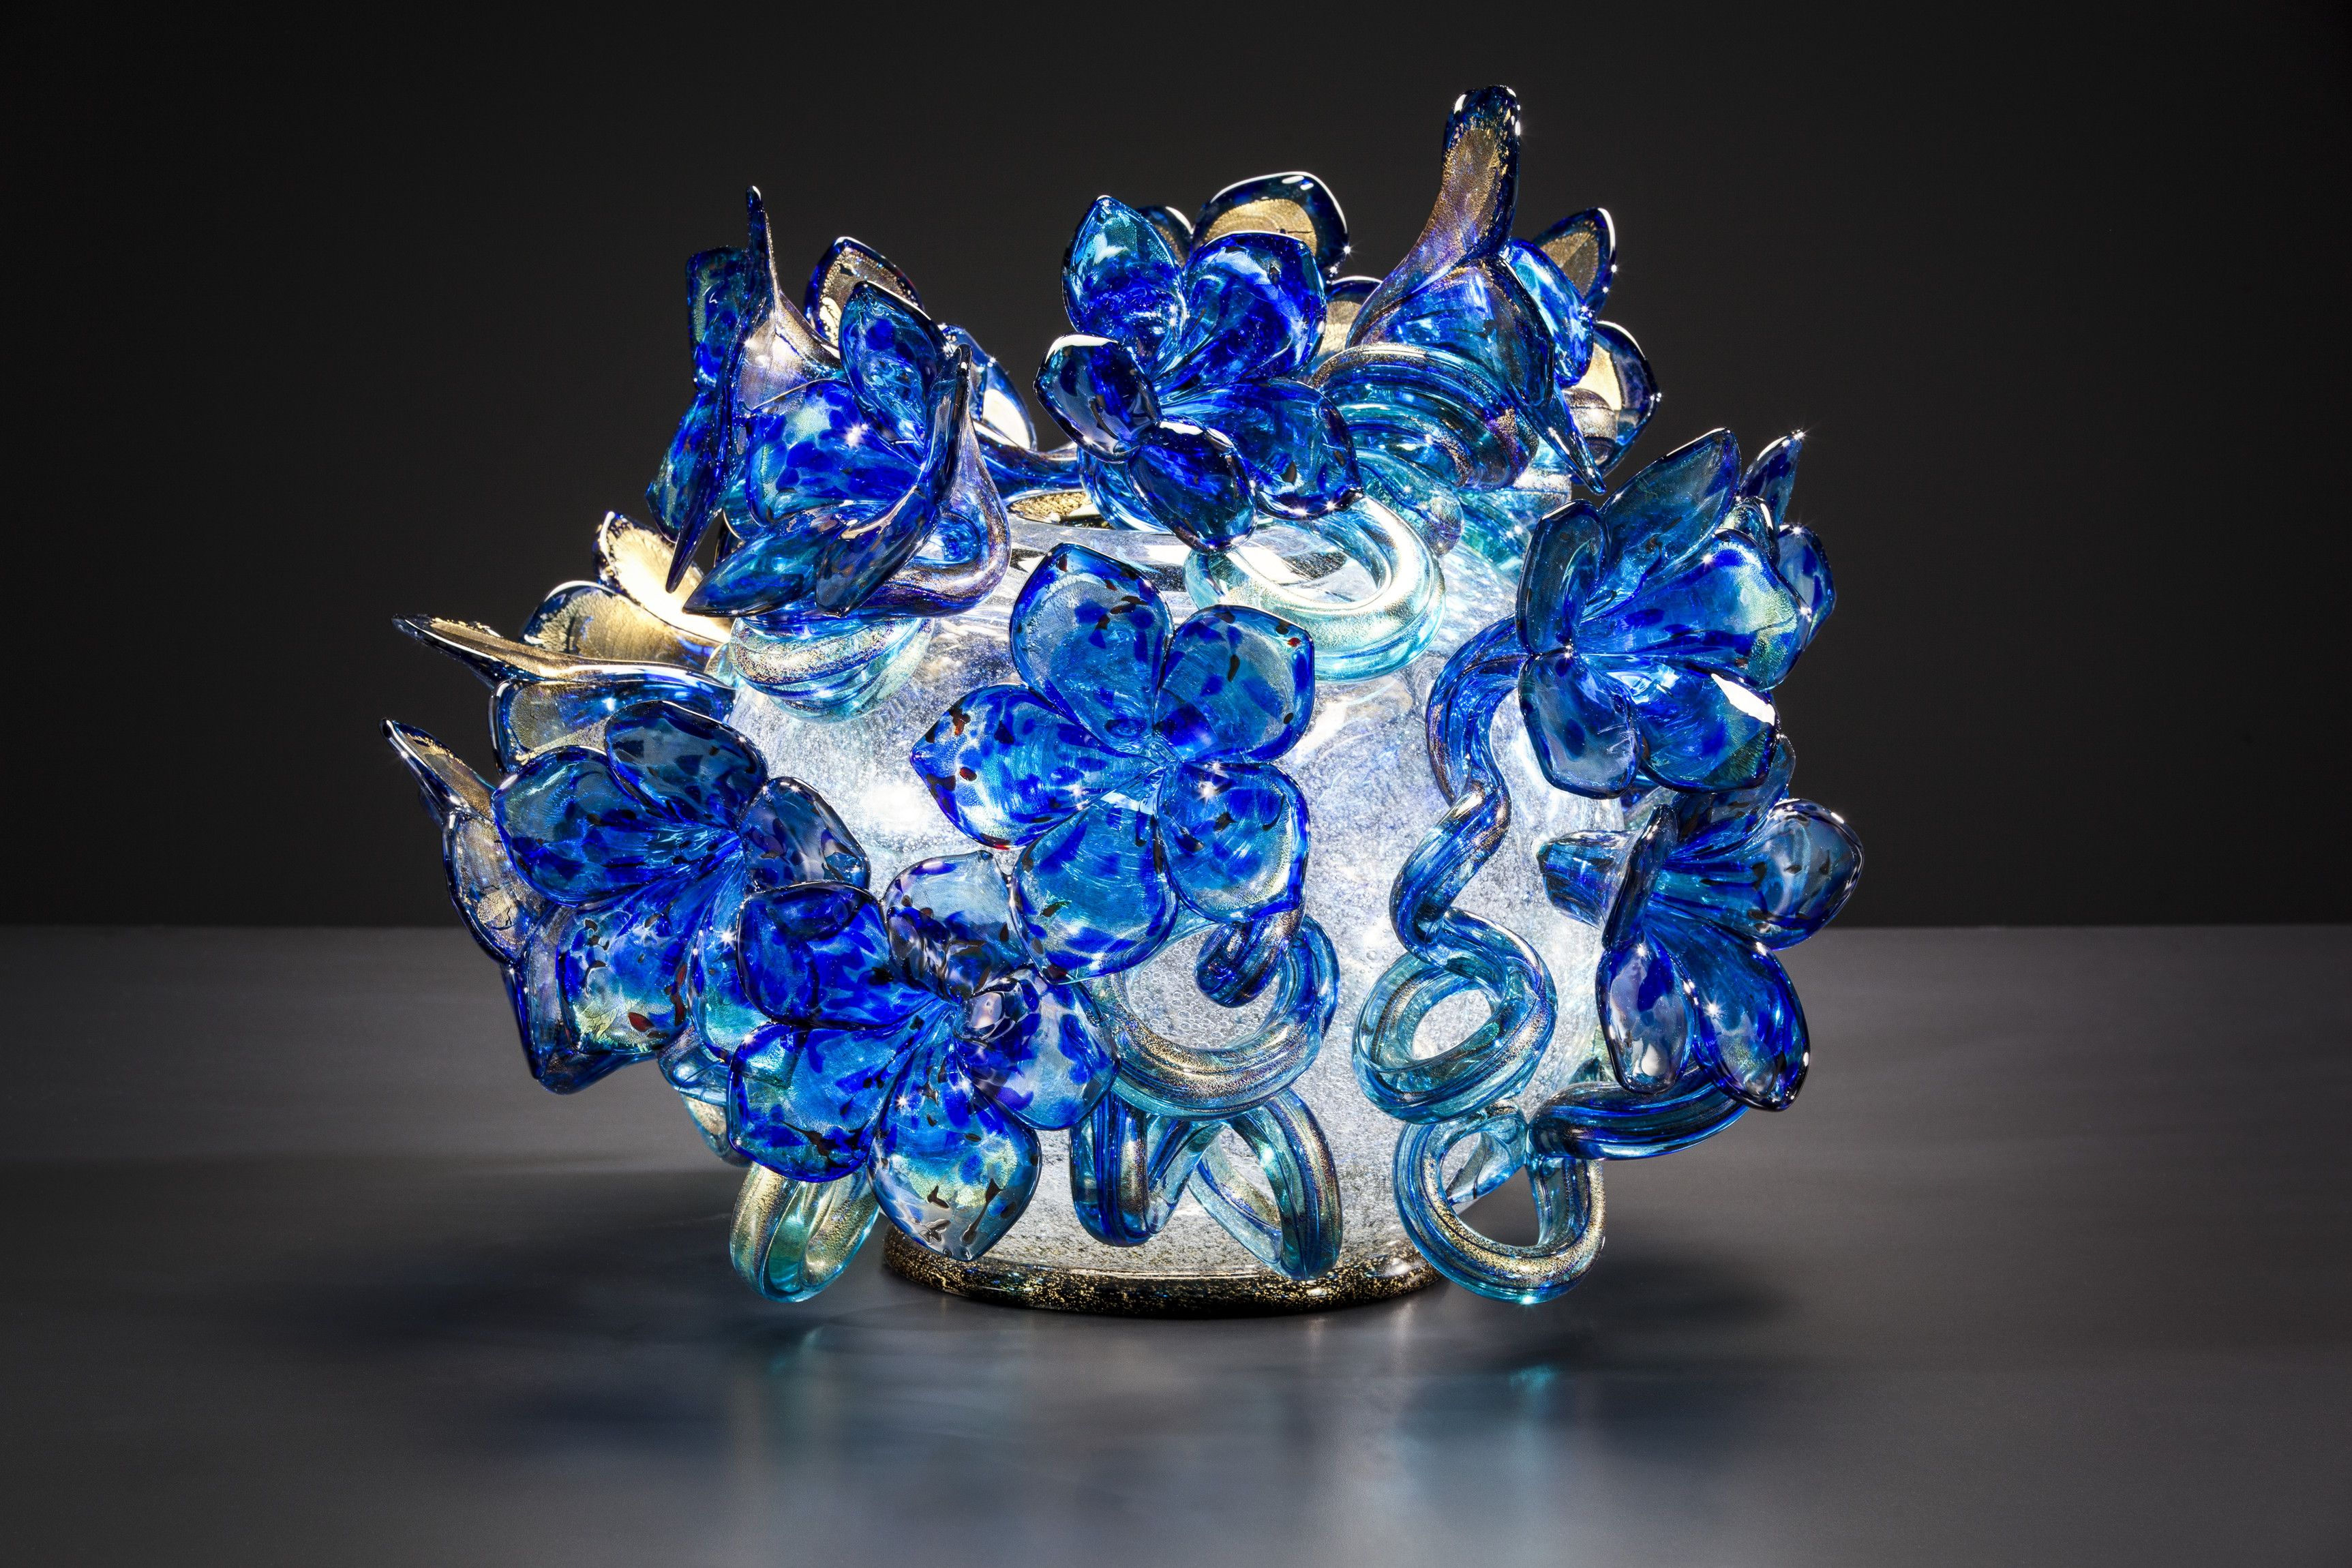 Venetians | Chihuly